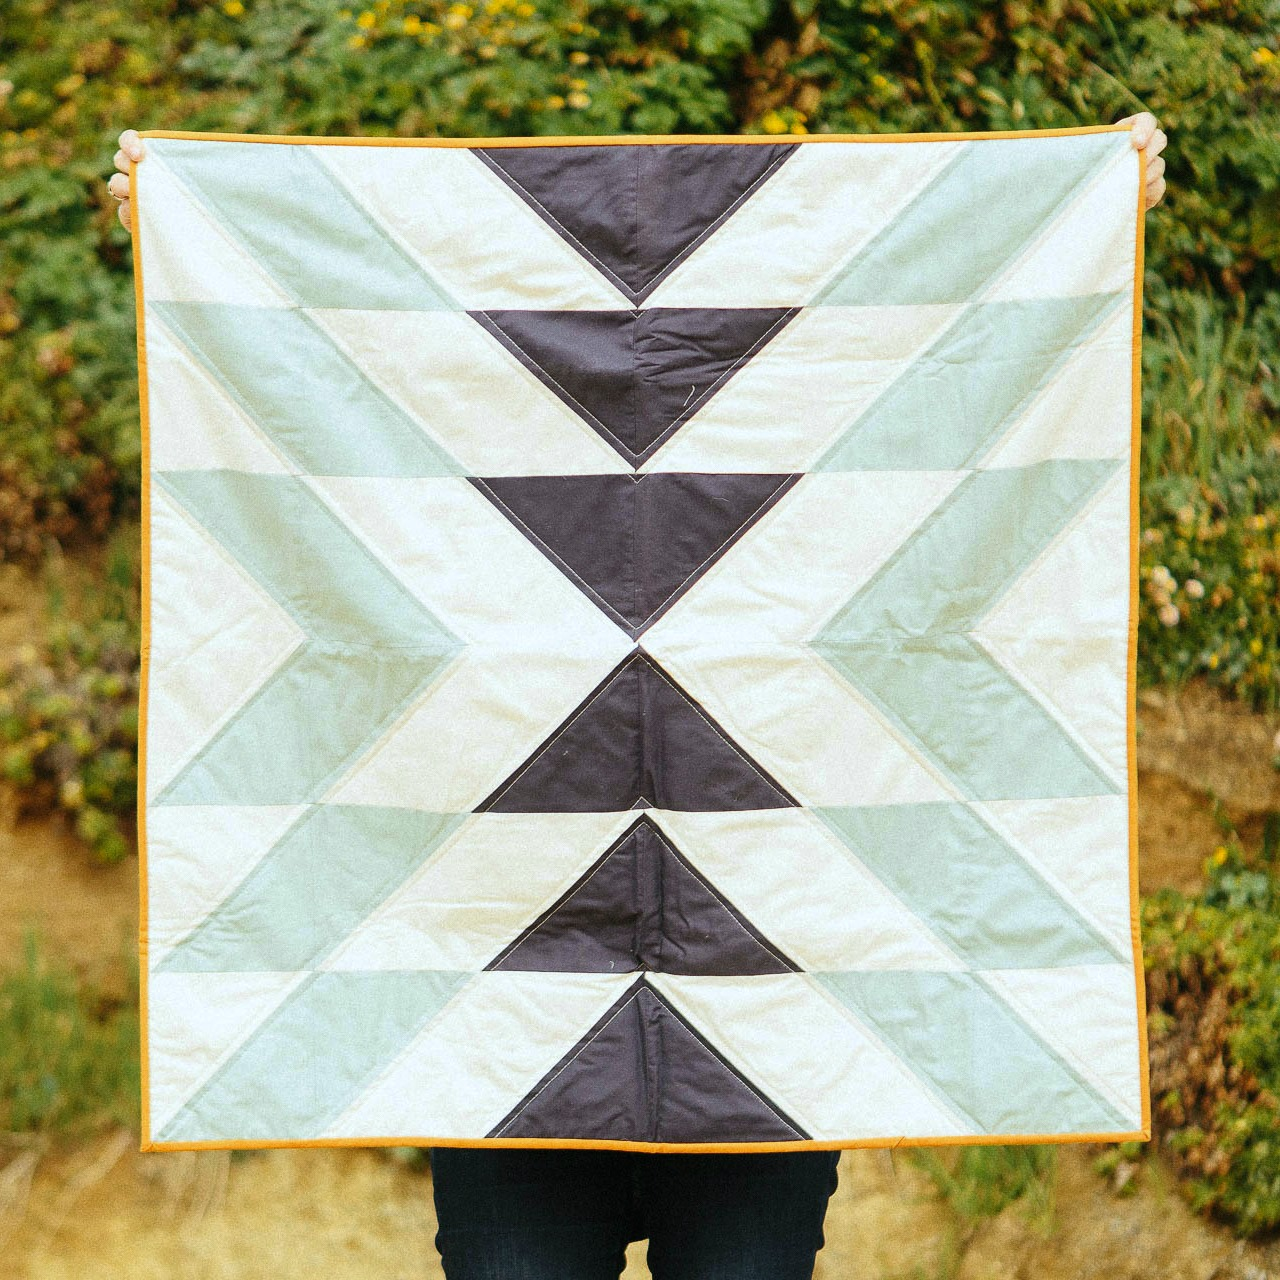 Slow Coast Quilt in Morning, 2016